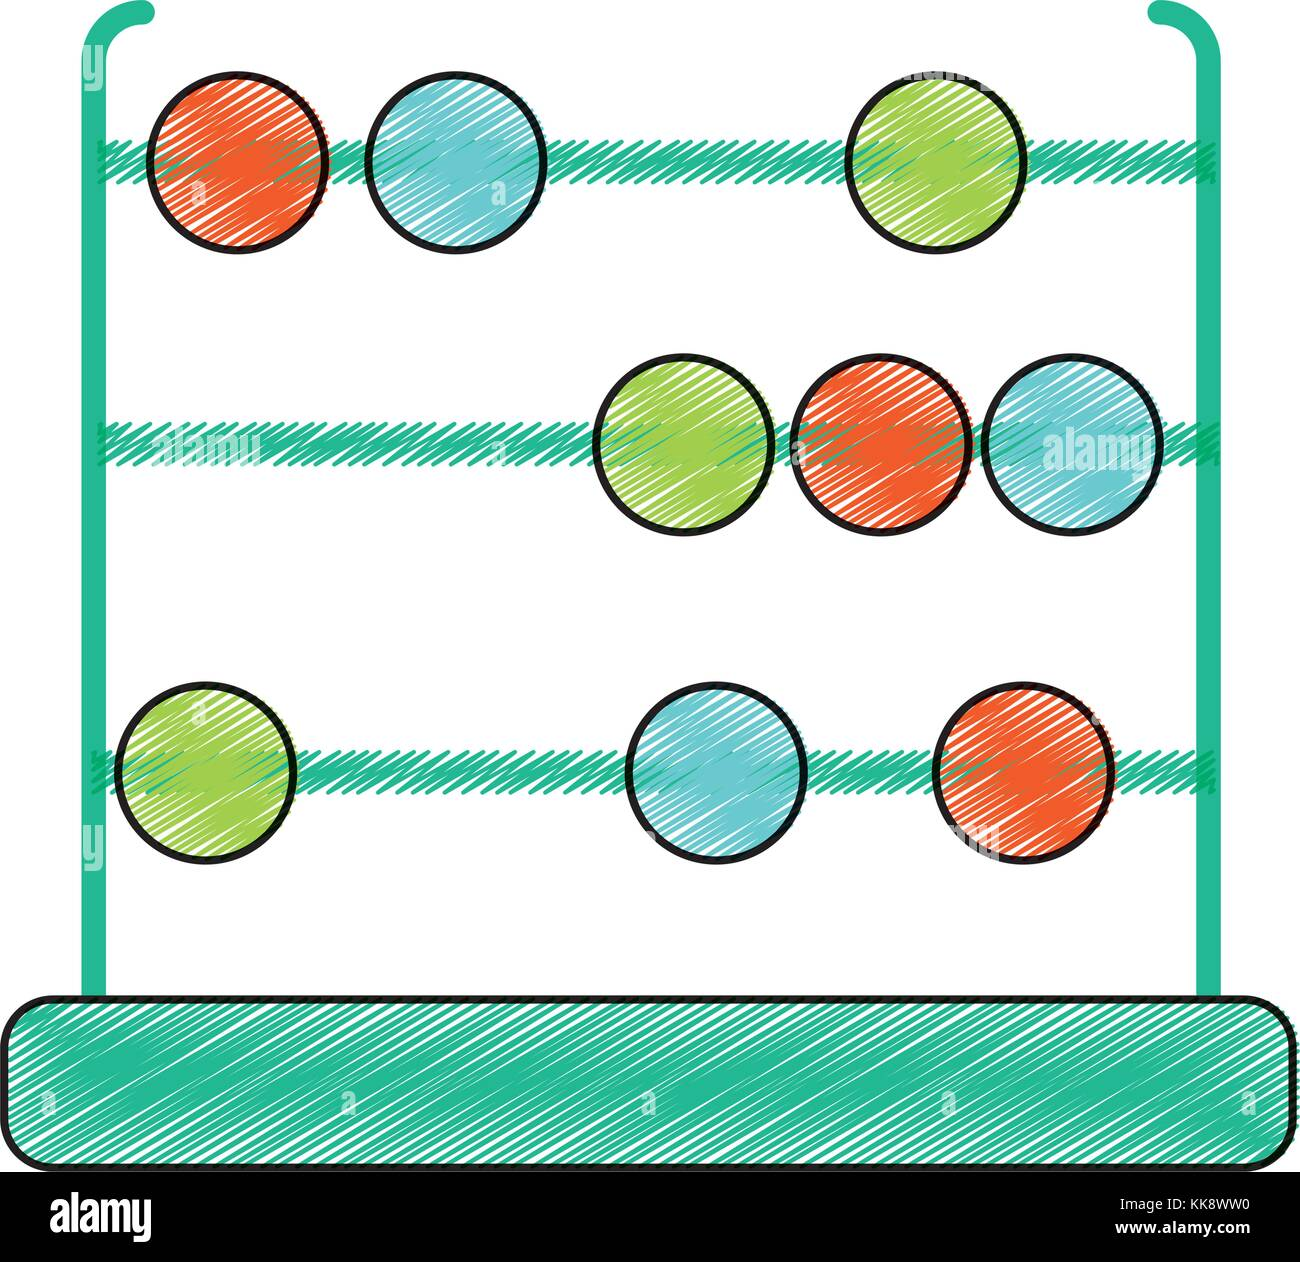 Math Game Stock Vector Images - Alamy